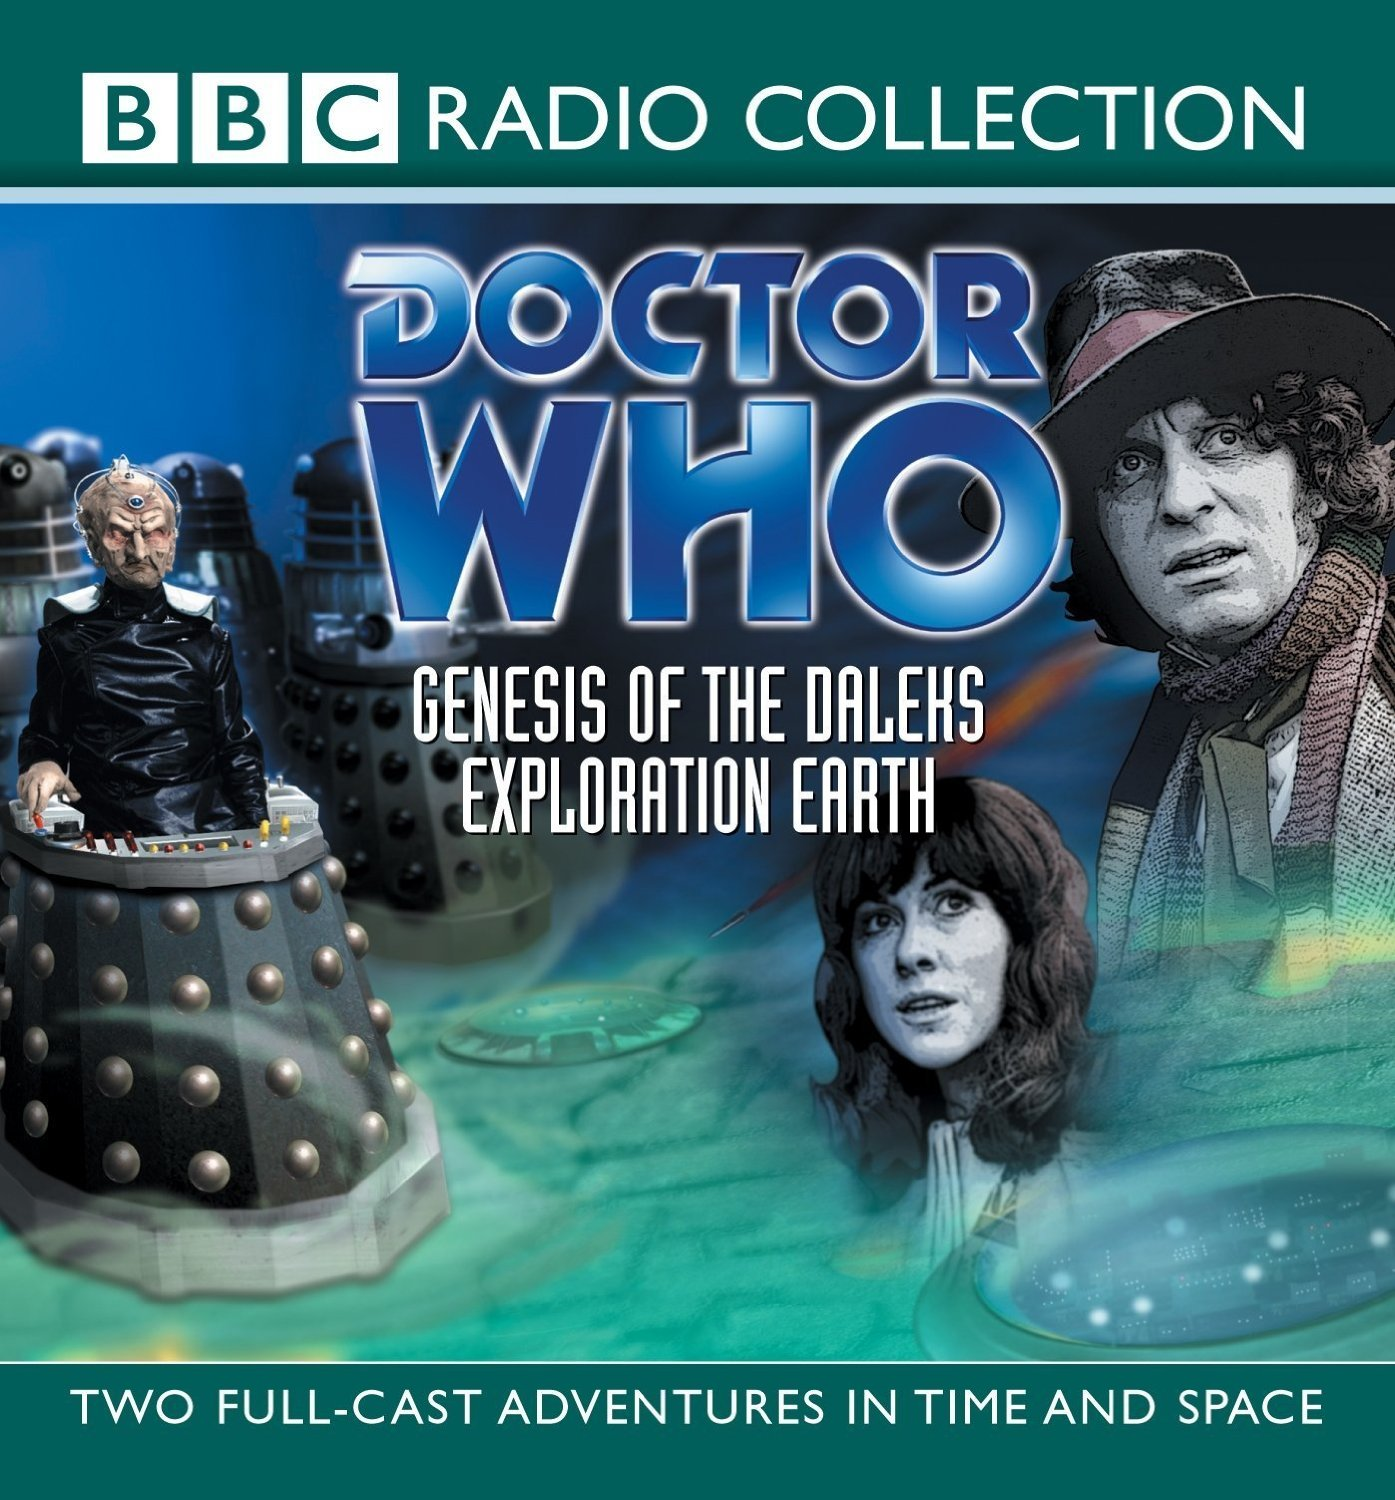 Genesis of the Daleks & Exploration Earth